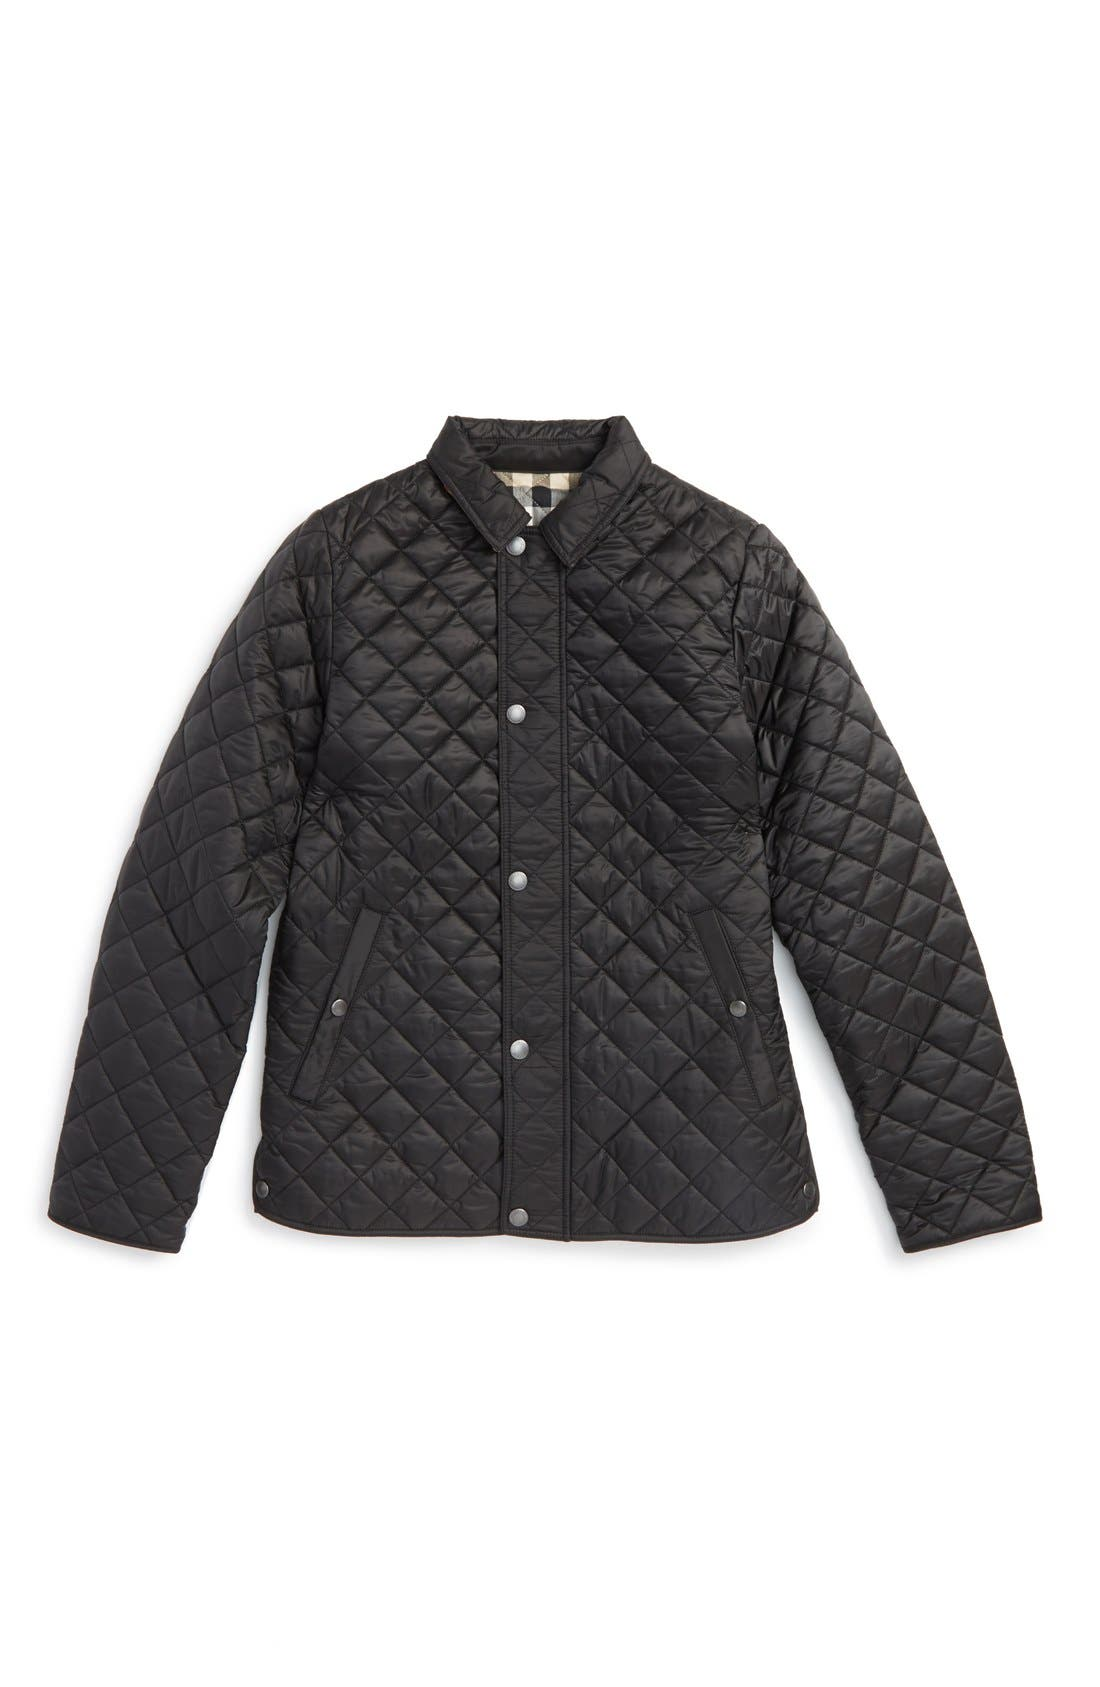 Main Image - Burberry Quilted Jacket (Little Boys & Big Boys)